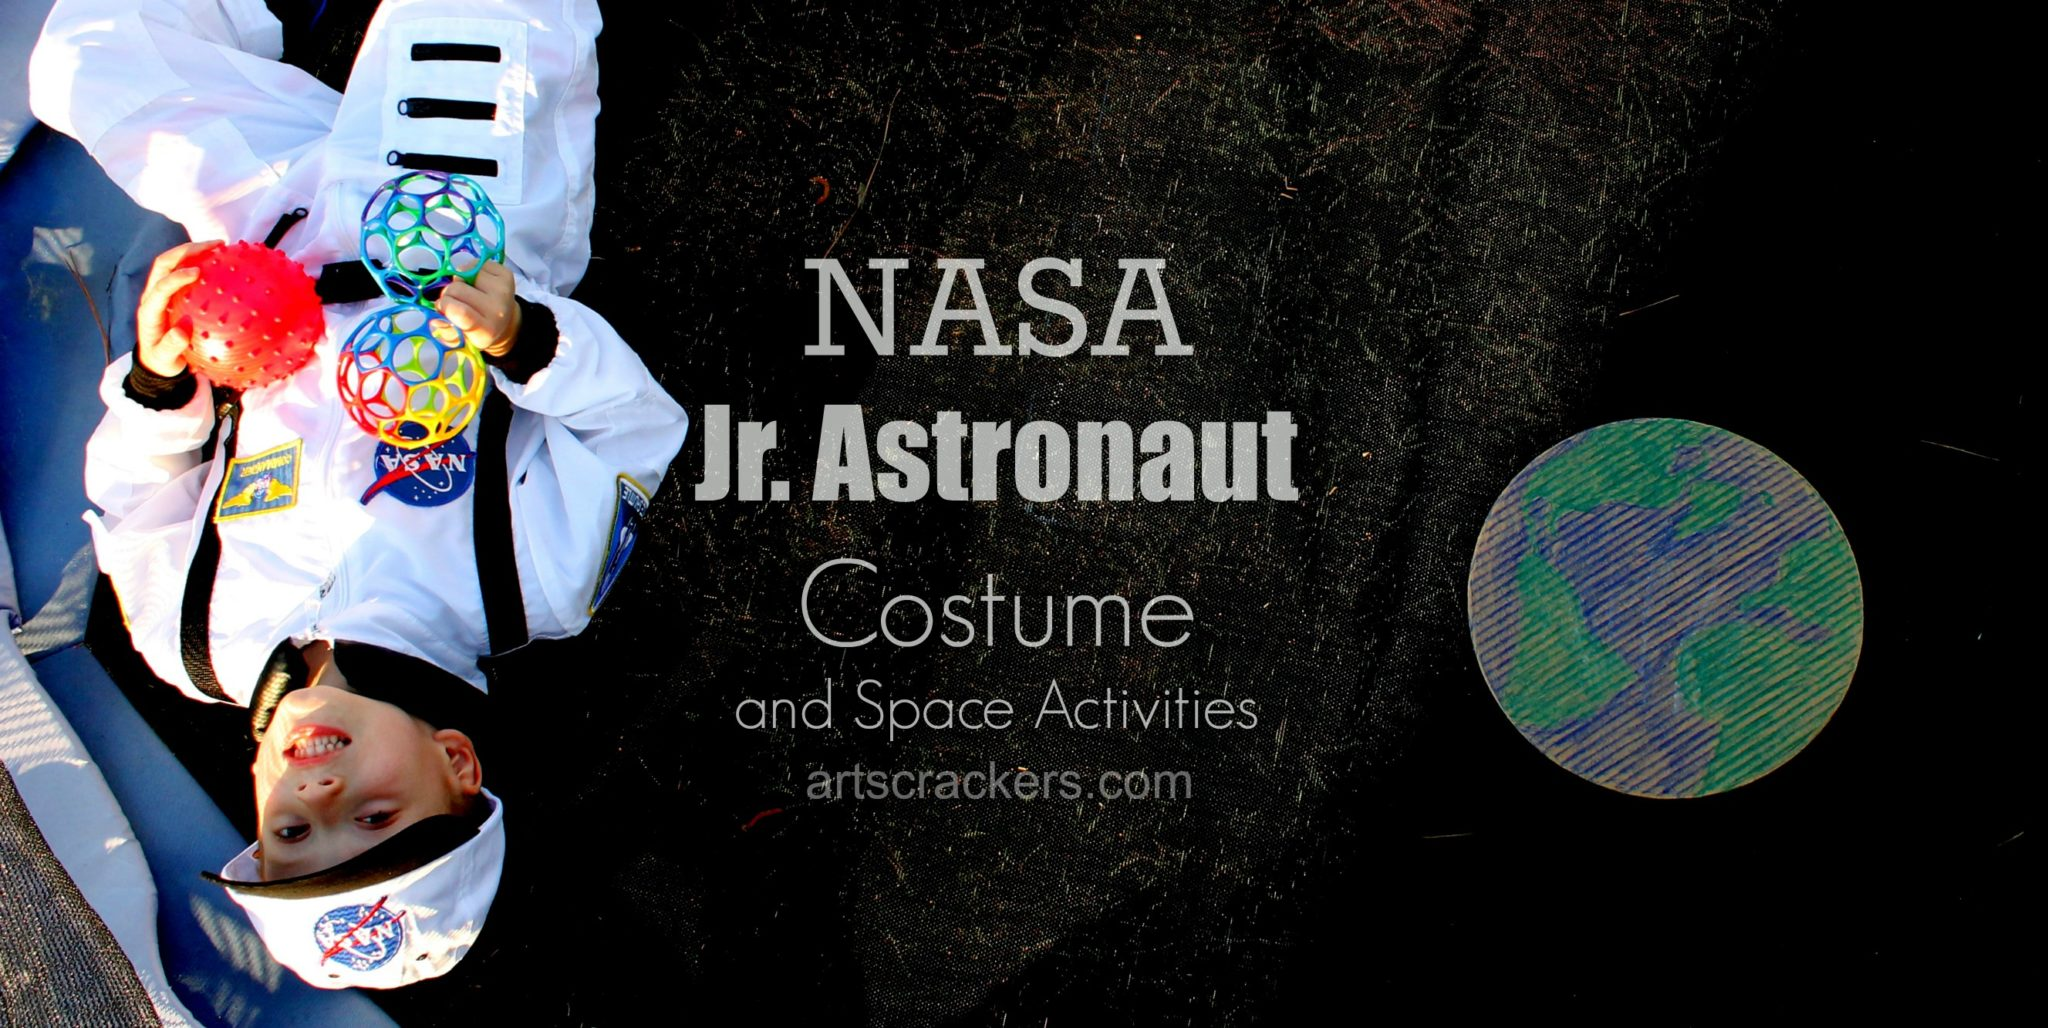 Jr Astronaut NASA Costume. Click the picture to read the review.